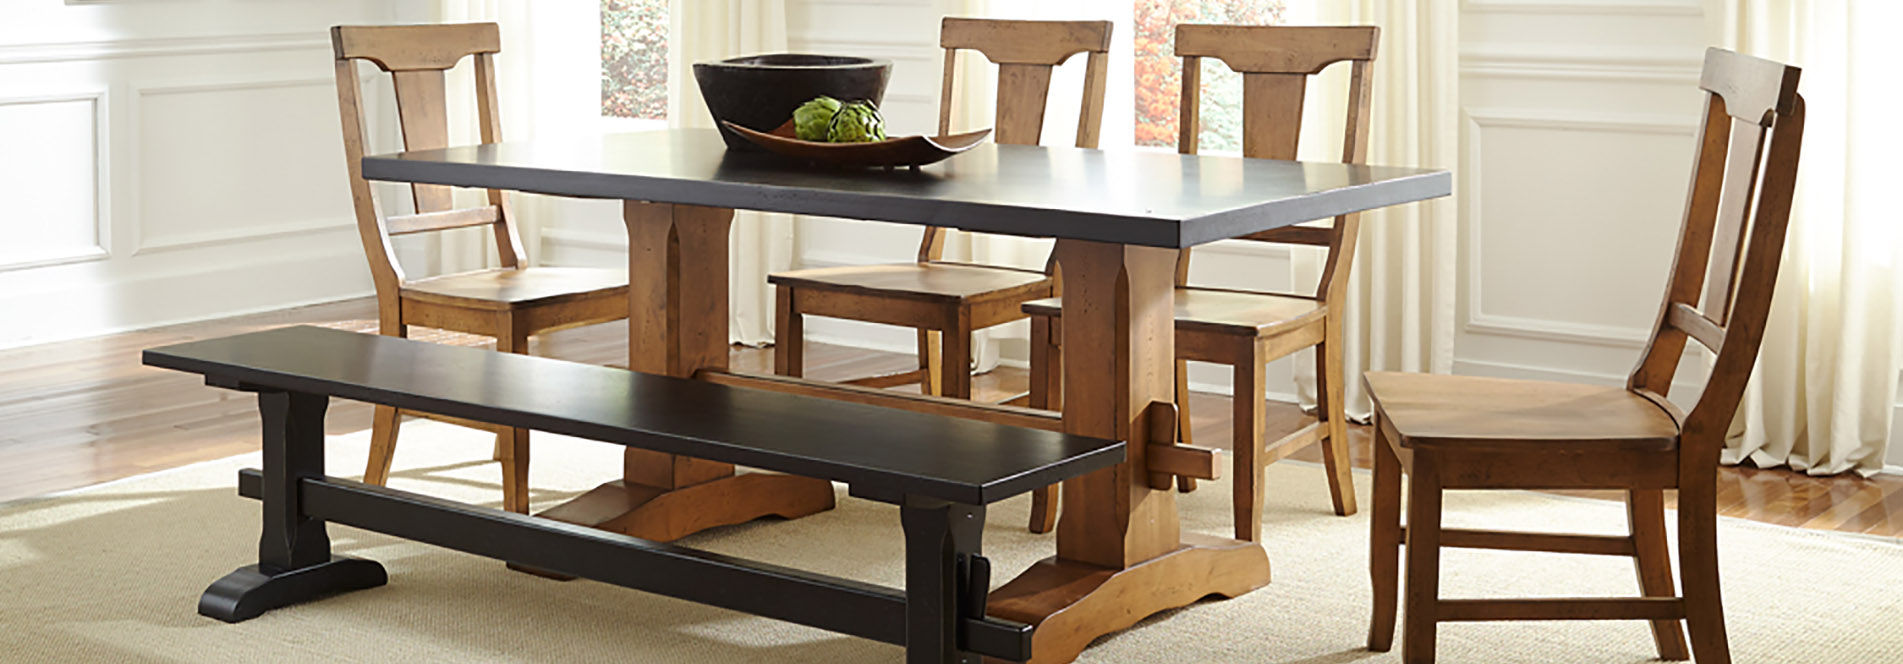 Custom Finished Solid Wood Furniture in Spring Texas